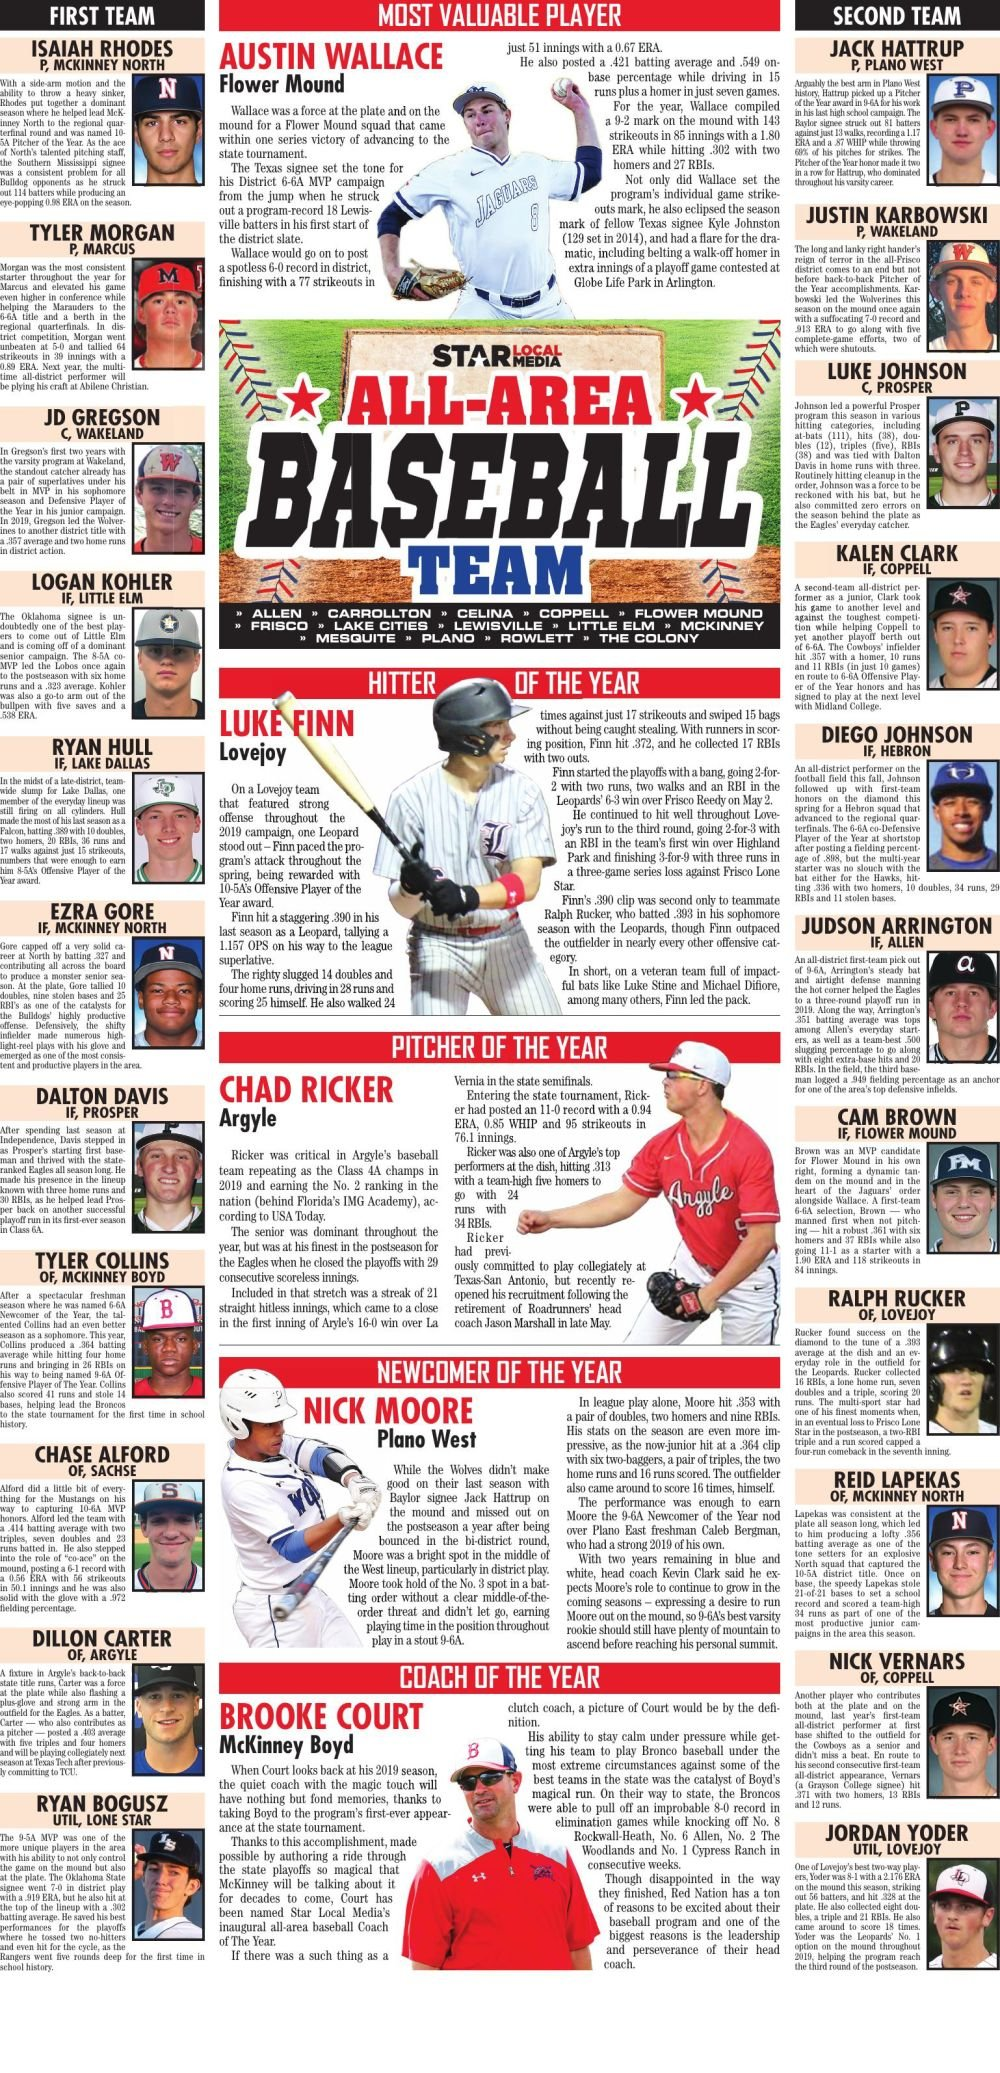 2019 Star Local Media All-Area Baseball Team